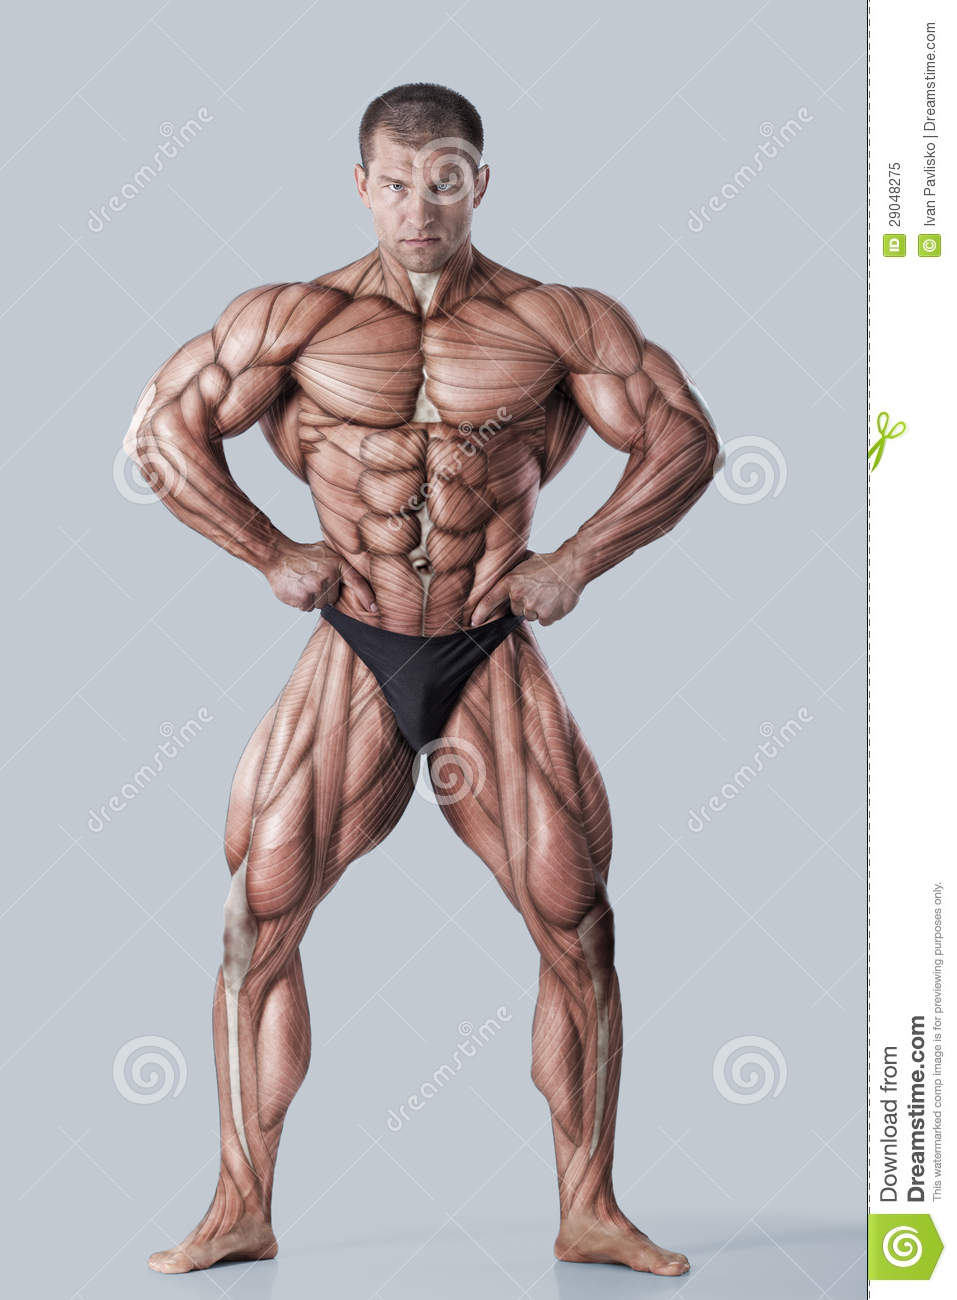 Anatomy Of Male Muscular System Stock Image - Image of abdominus ...